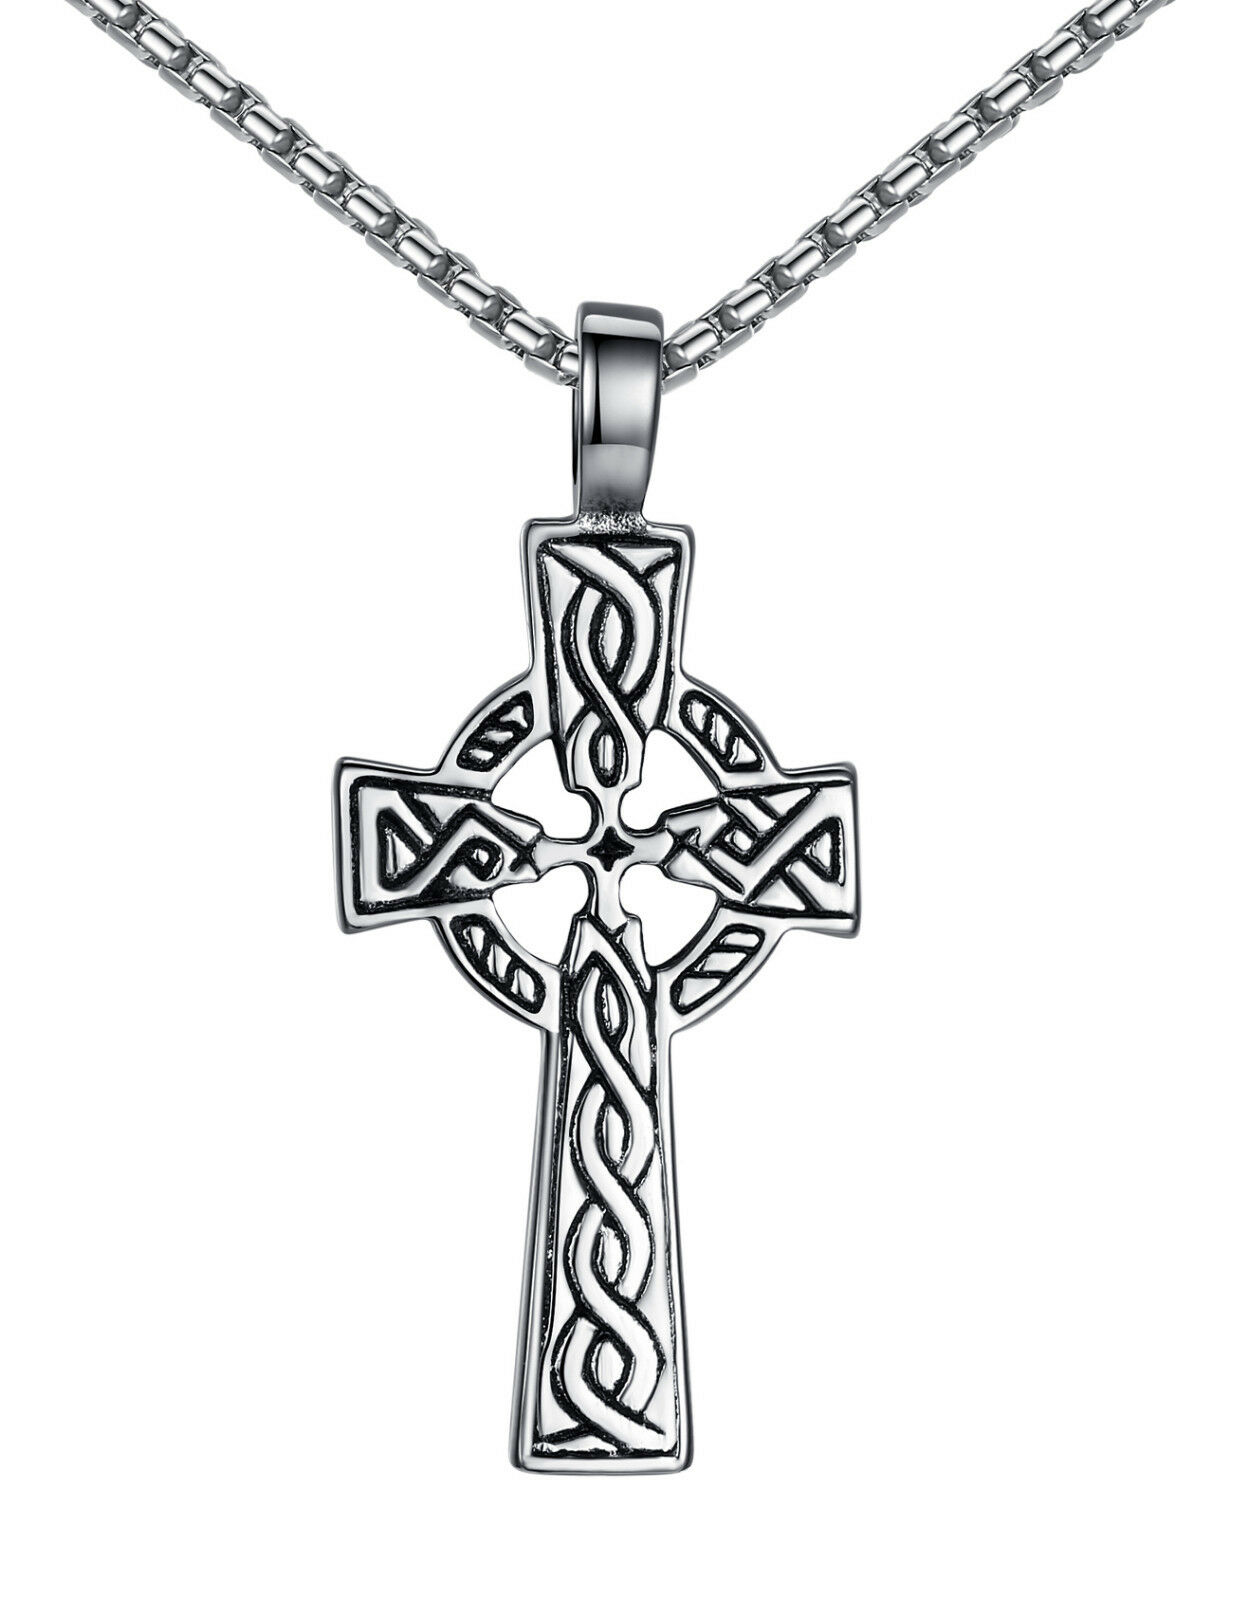 Stainless Steel Unisex Men's and Women's Small Celtic Cross Pendant Necklace Chains, Necklaces & Pendants